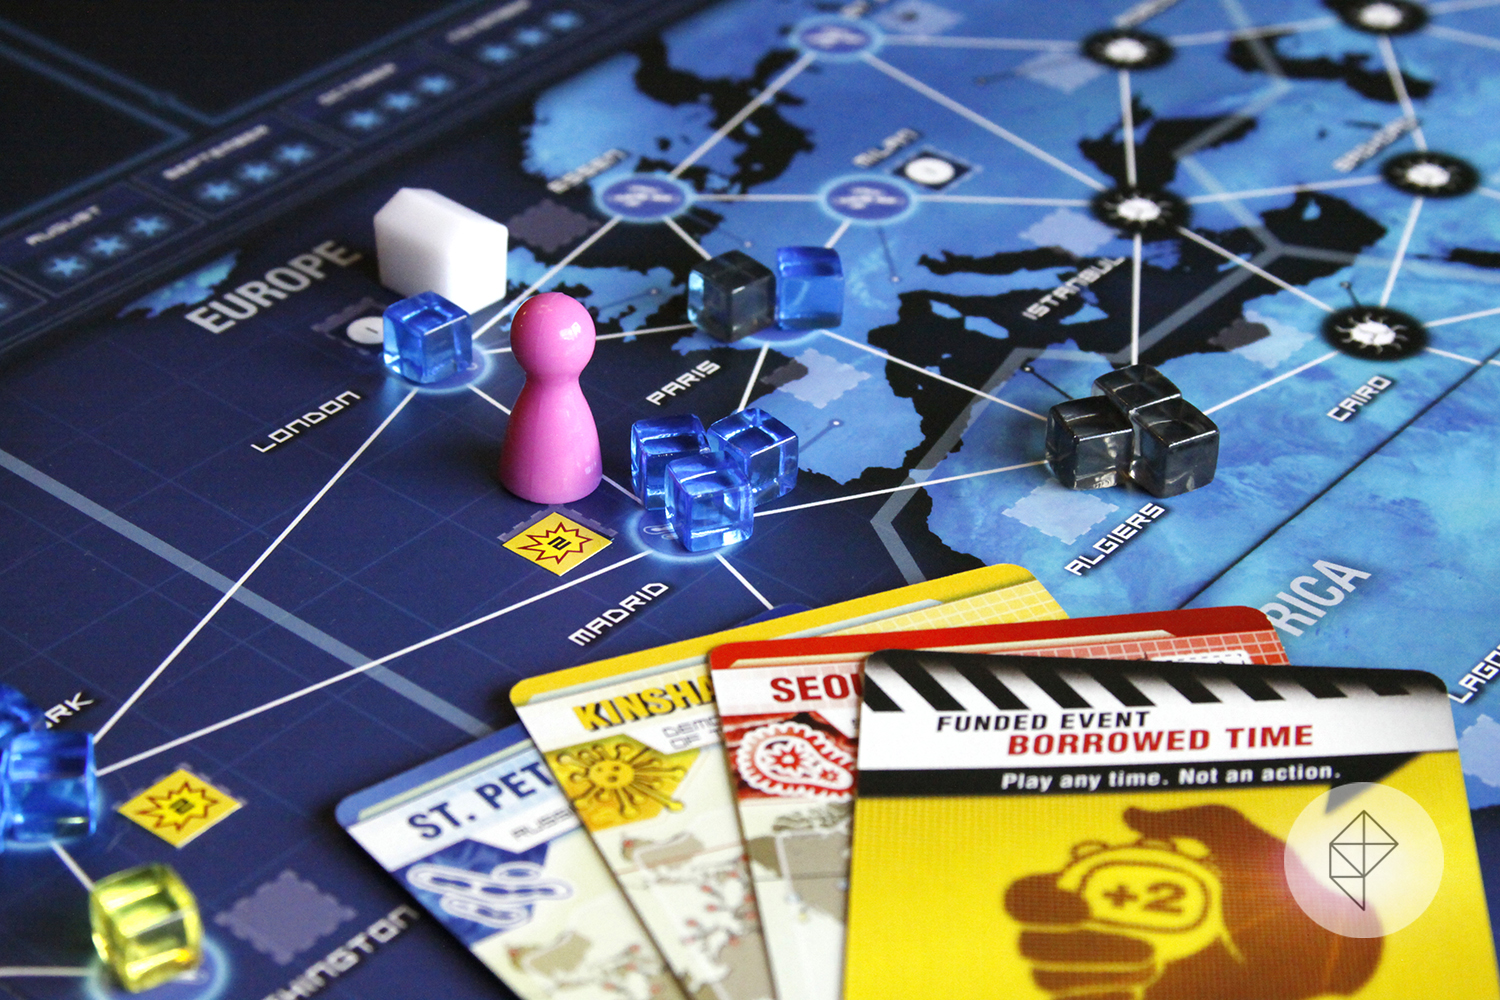 A one-day-only Amazon deal discounts tons of tabletop games by up to 40 percent